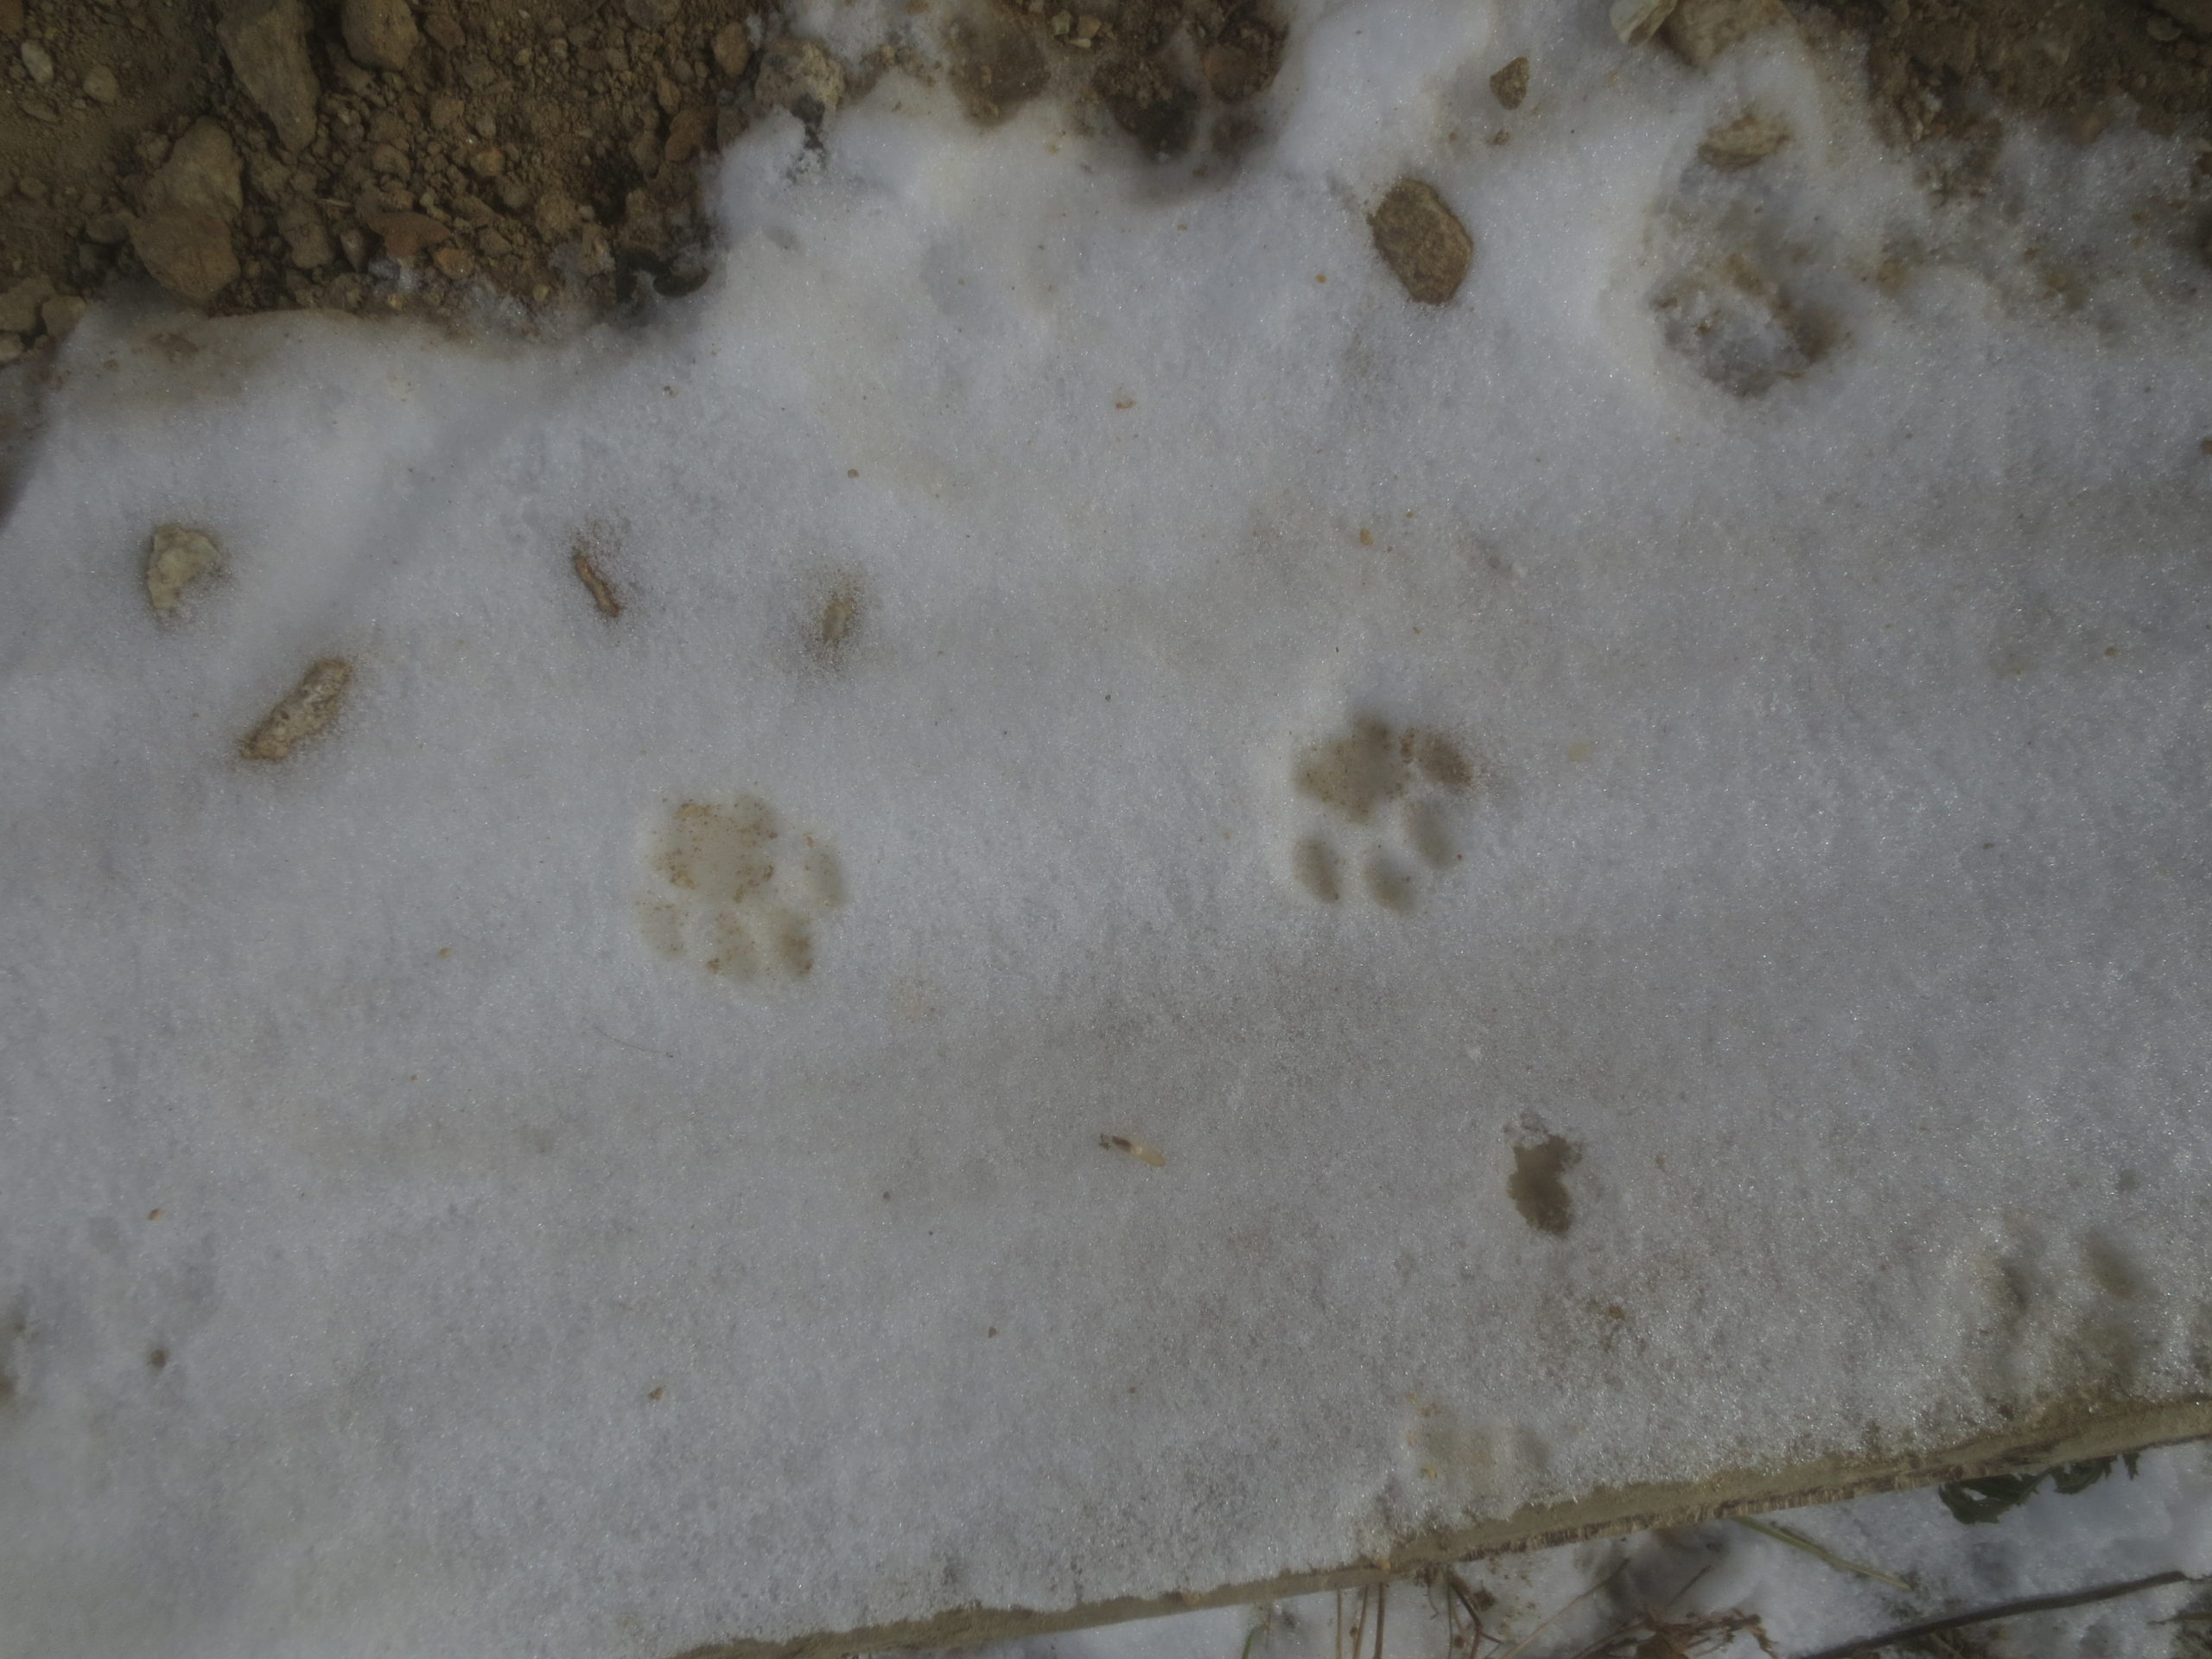 two cat paw prints in snow